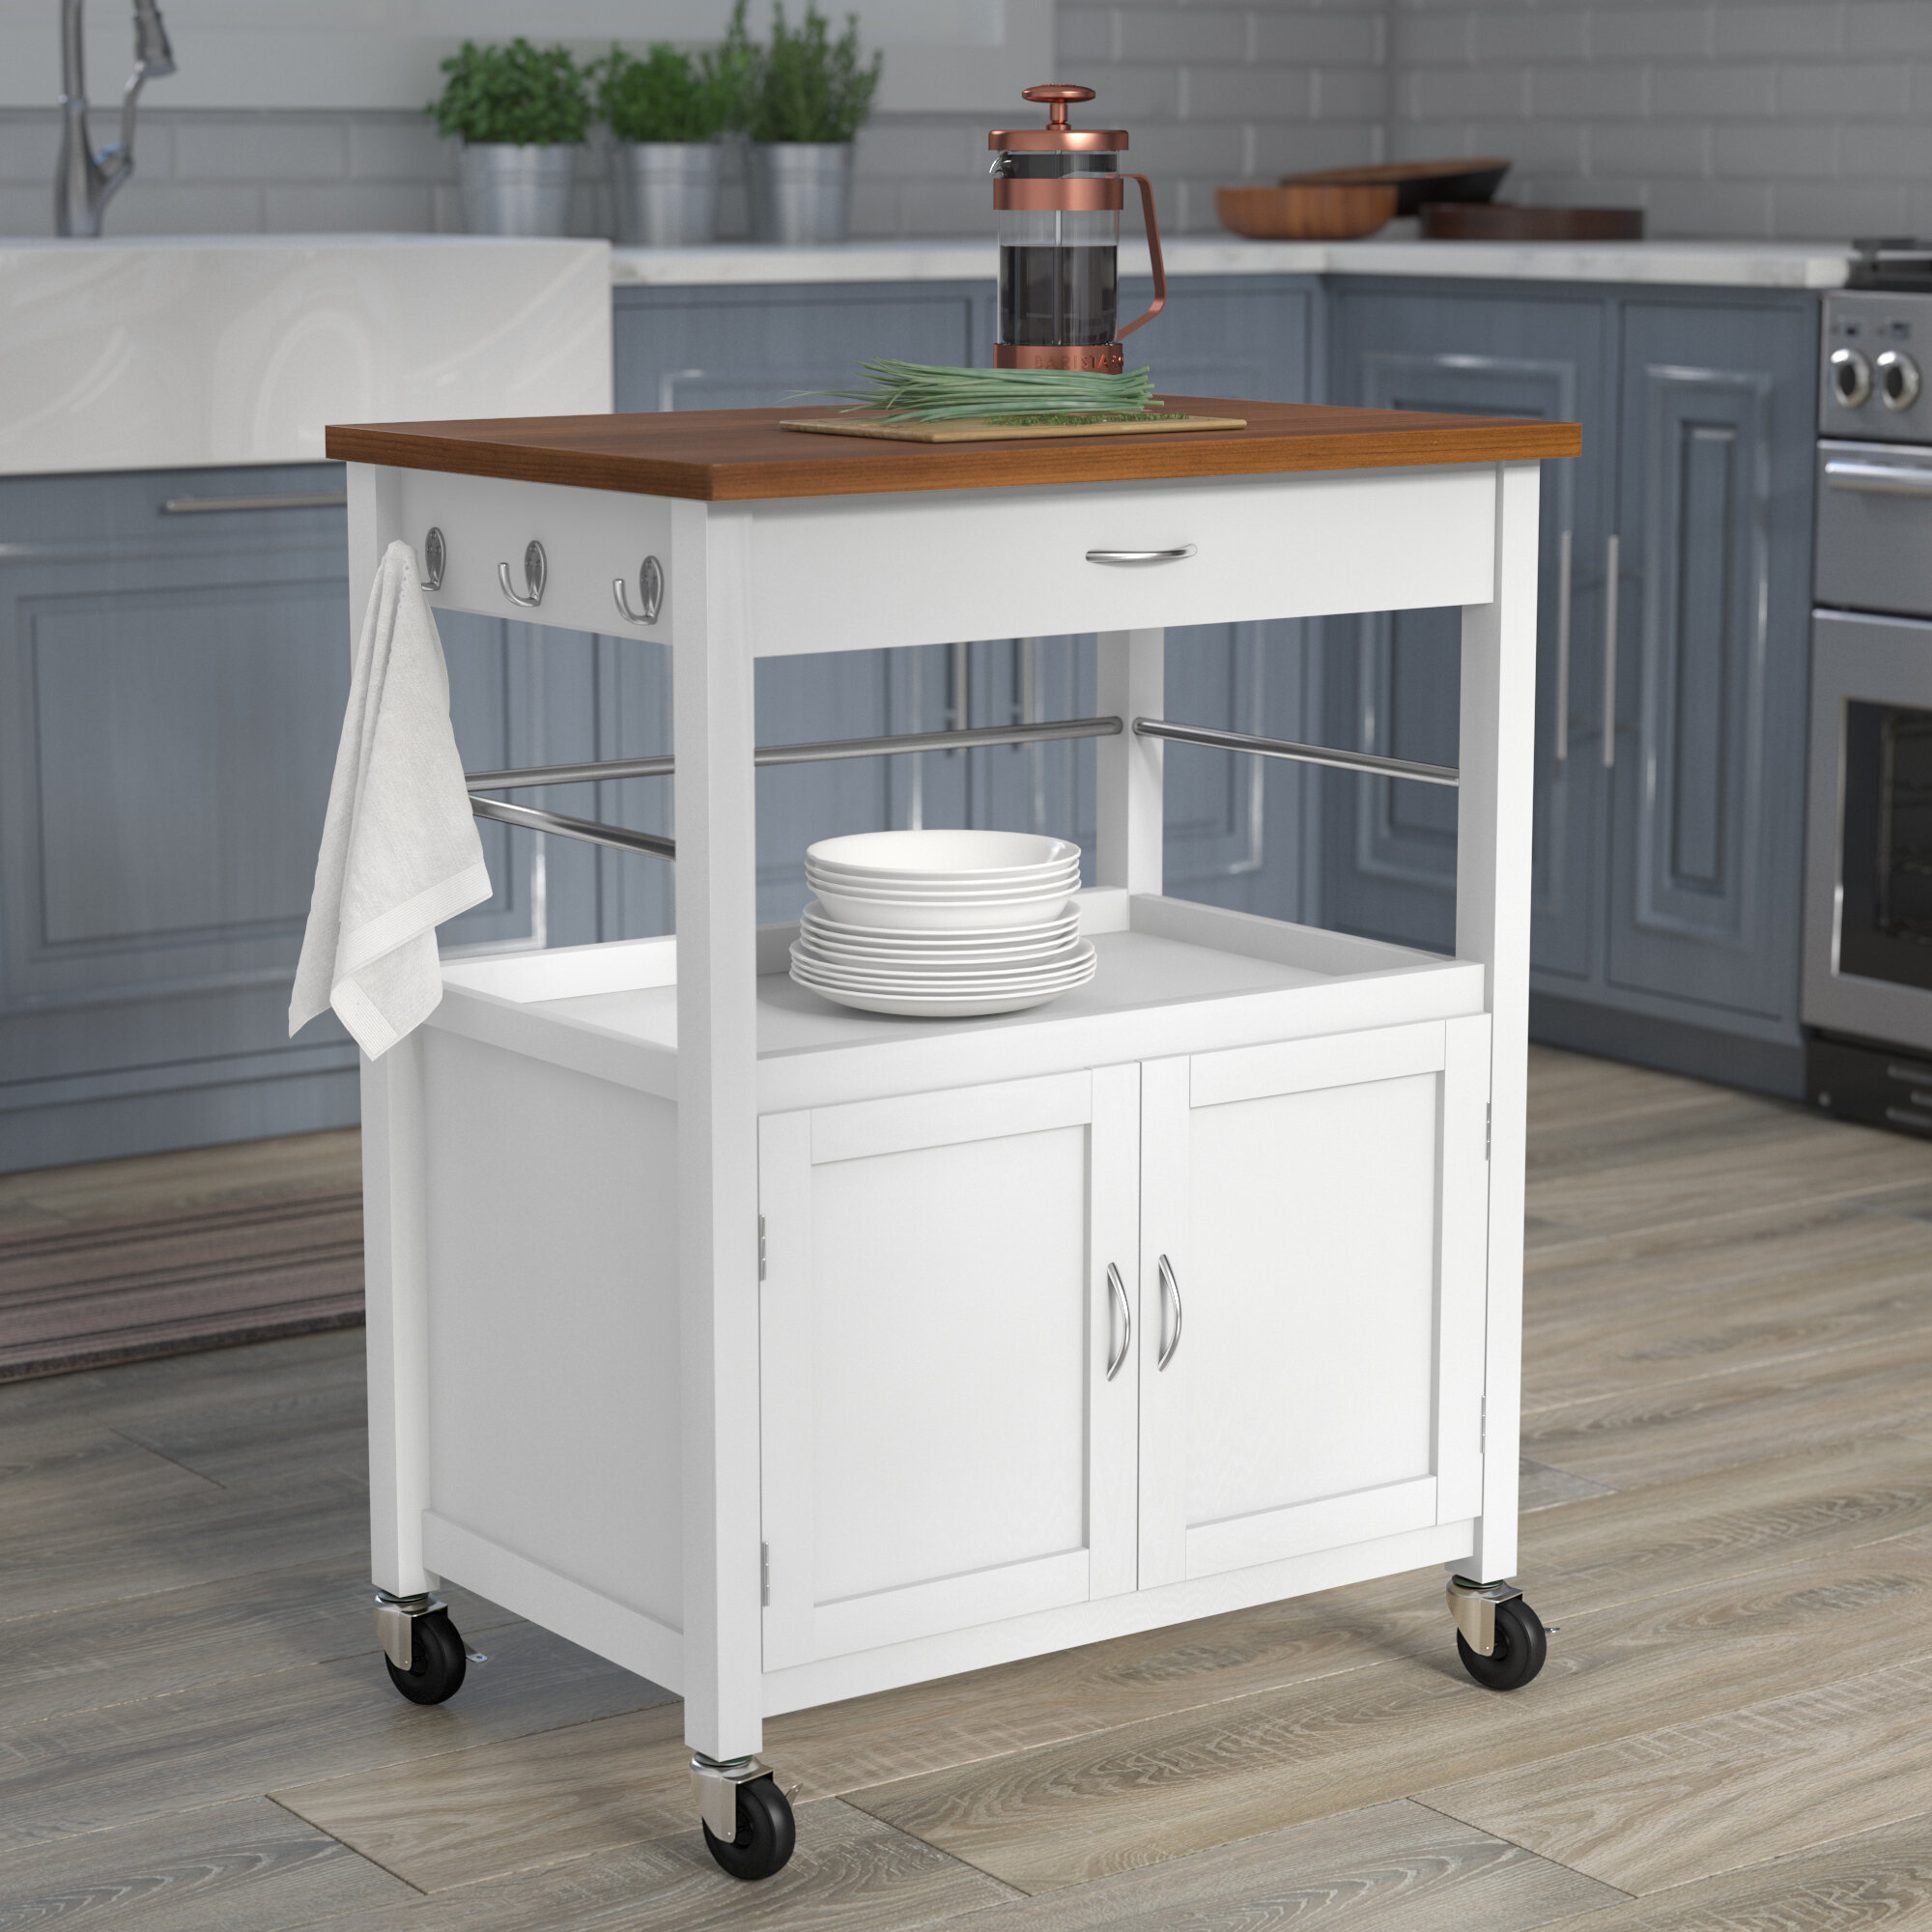 Andover Mills Kibler Kitchen Island Cart with Natural Butcher Block on kitchen cart with trash can, kitchen islands product, outdoor kitchen carts, kitchen cart with stools, kitchen storage carts, pantry carts, kitchen organizer carts, designer kitchen carts, kitchen cart granite top cart, kitchen carts product, hotel bell carts, kitchen islands from lowe's, study carts, kitchen bar carts, kitchen islands with seating, library carts, kitchen cart with granite top, small kitchen carts,